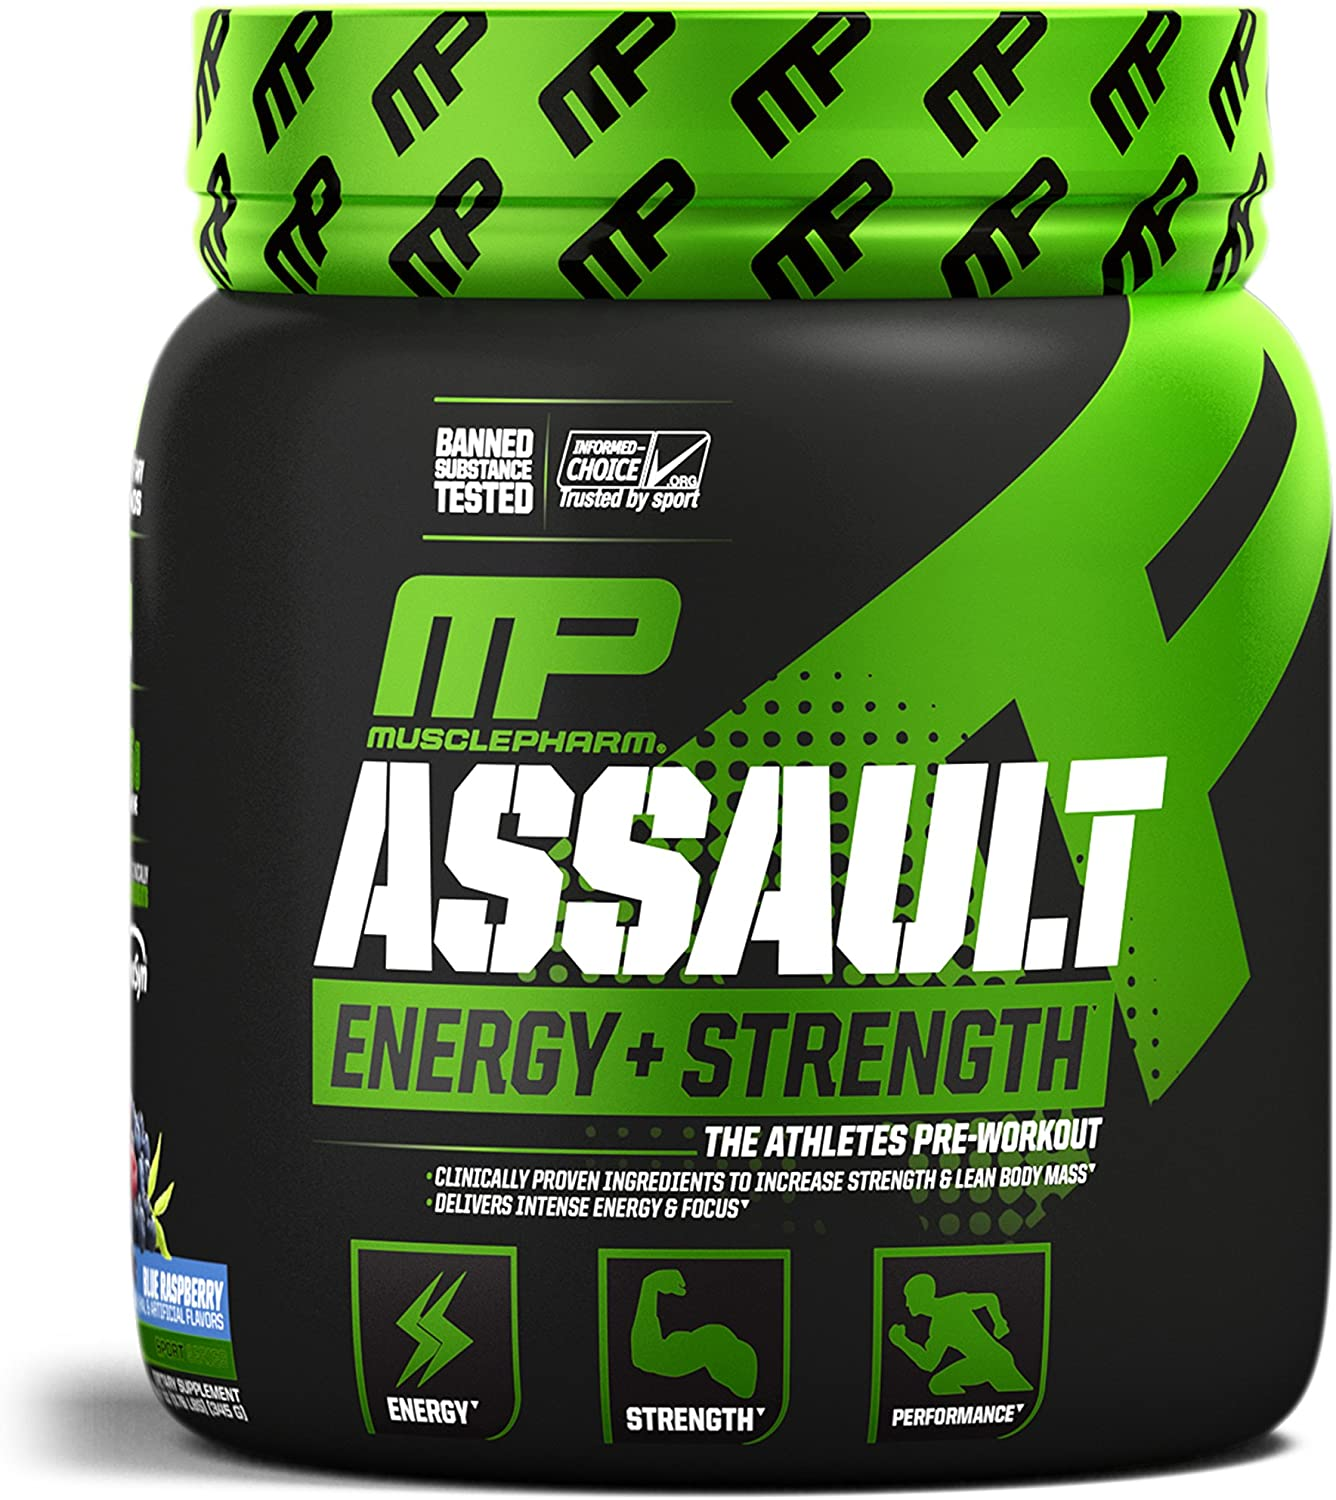 MusclePharm Assault Sport Pre-Workout Powder with High-Dose Energy, Focus, Strength, and Endurance, Blue Raspberry, 30 Servings: Health & Personal Care